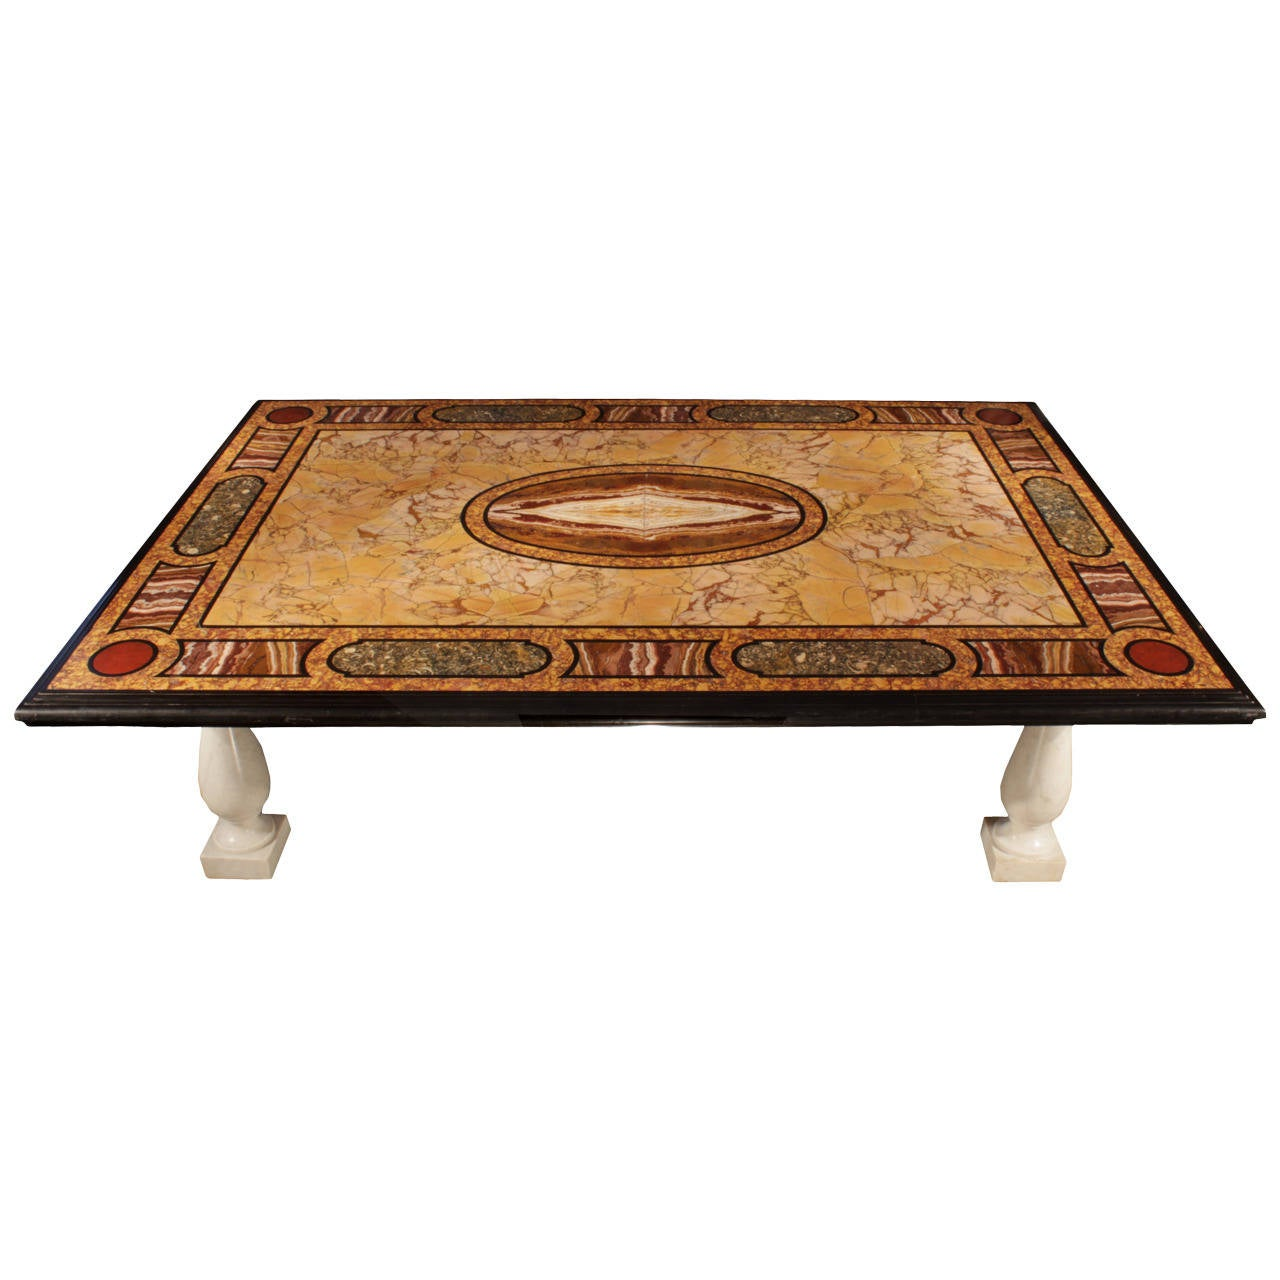 Italian Coffee Tables Marble Italian 19th Century Pietra Dura Marble Plateau Coffee Table At